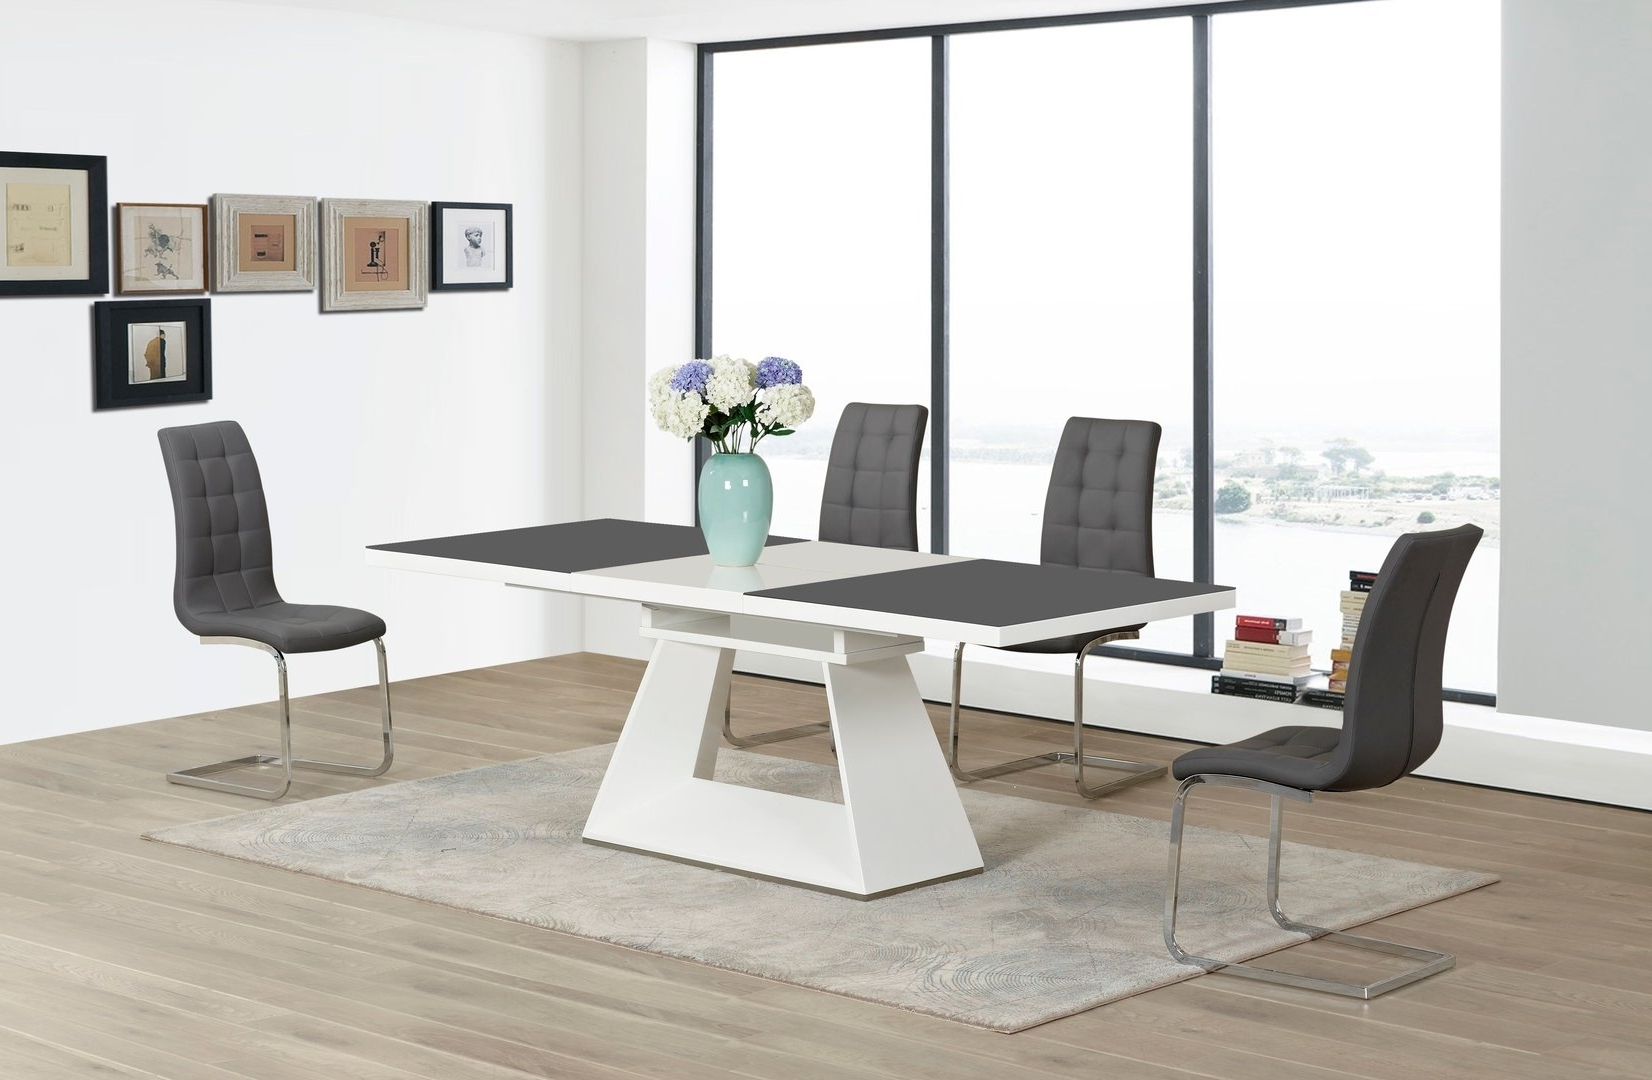 Extendable Dining Tables And 6 Chairs Intended For Trendy Extending Dining Table Sets Uk – Castrophotos (View 4 of 25)